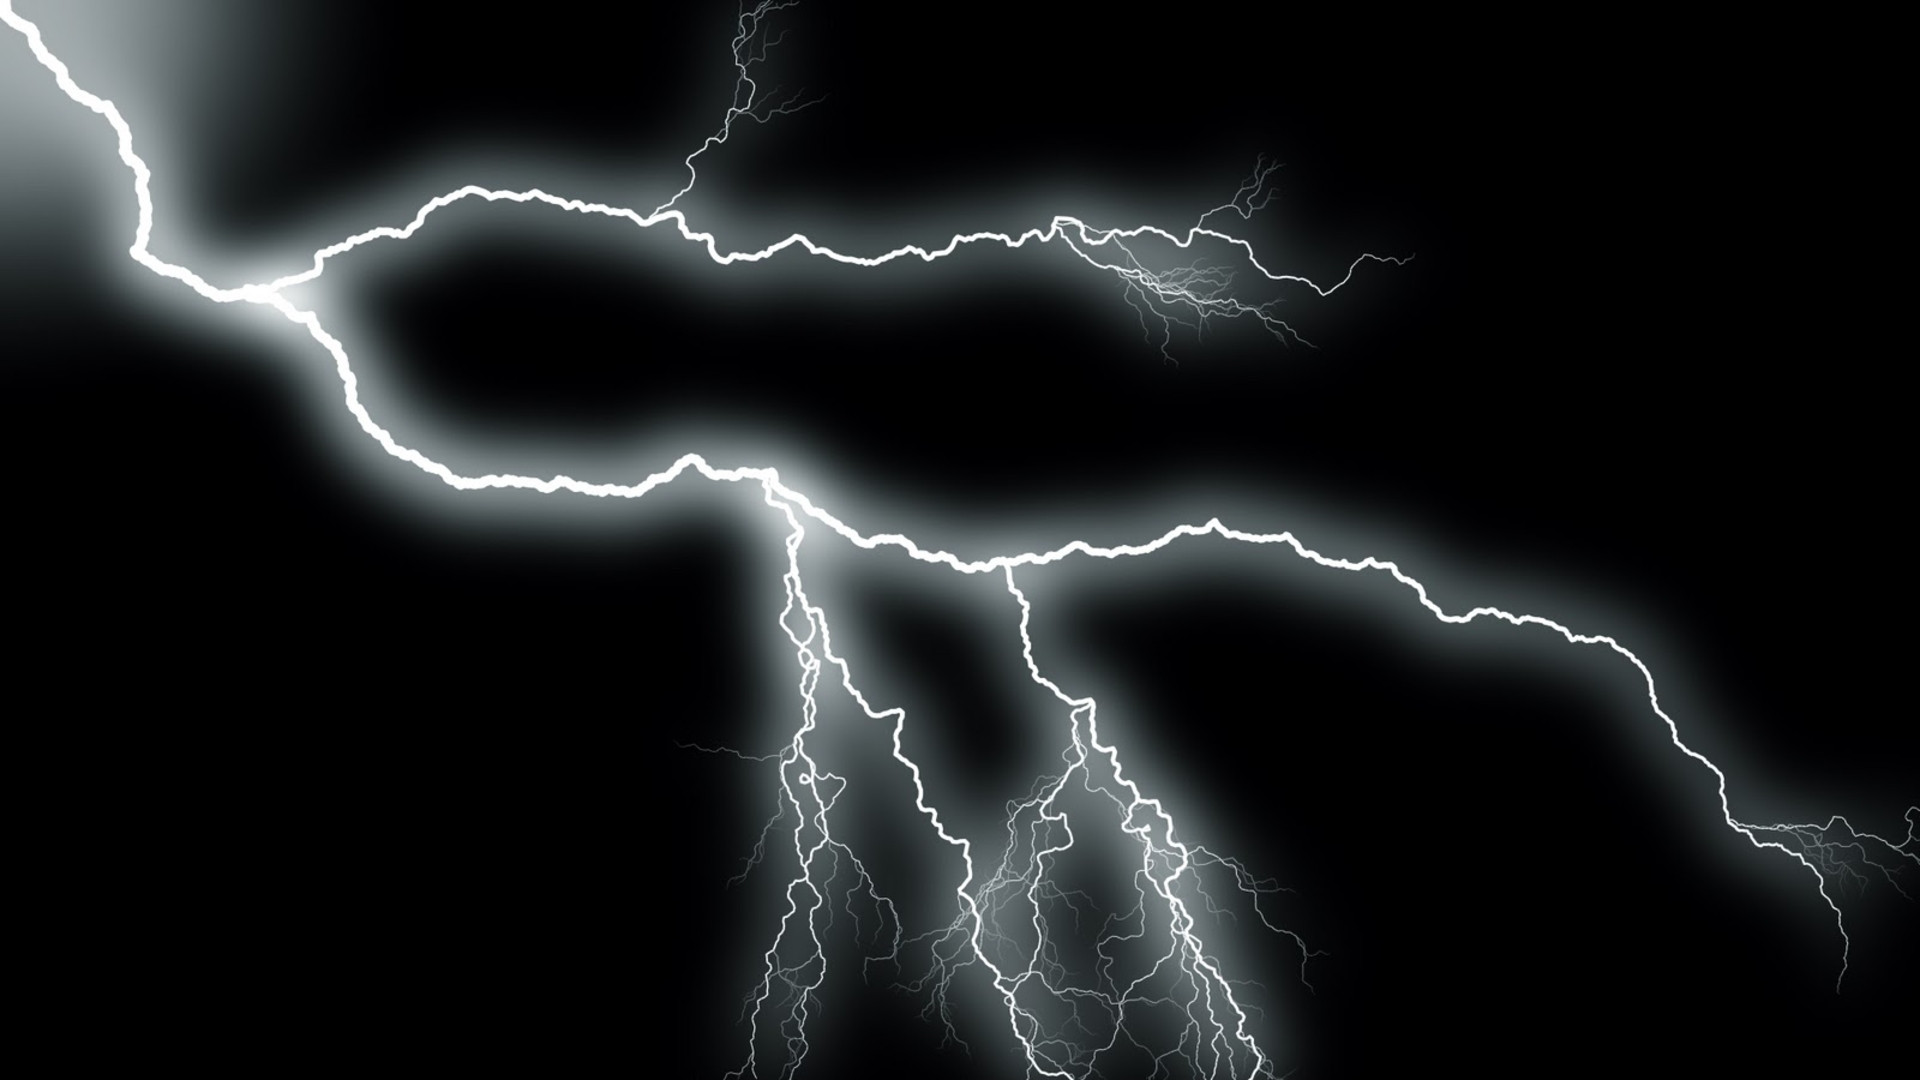 Lightning Bolt Backgrounds - Wallpaper Cave